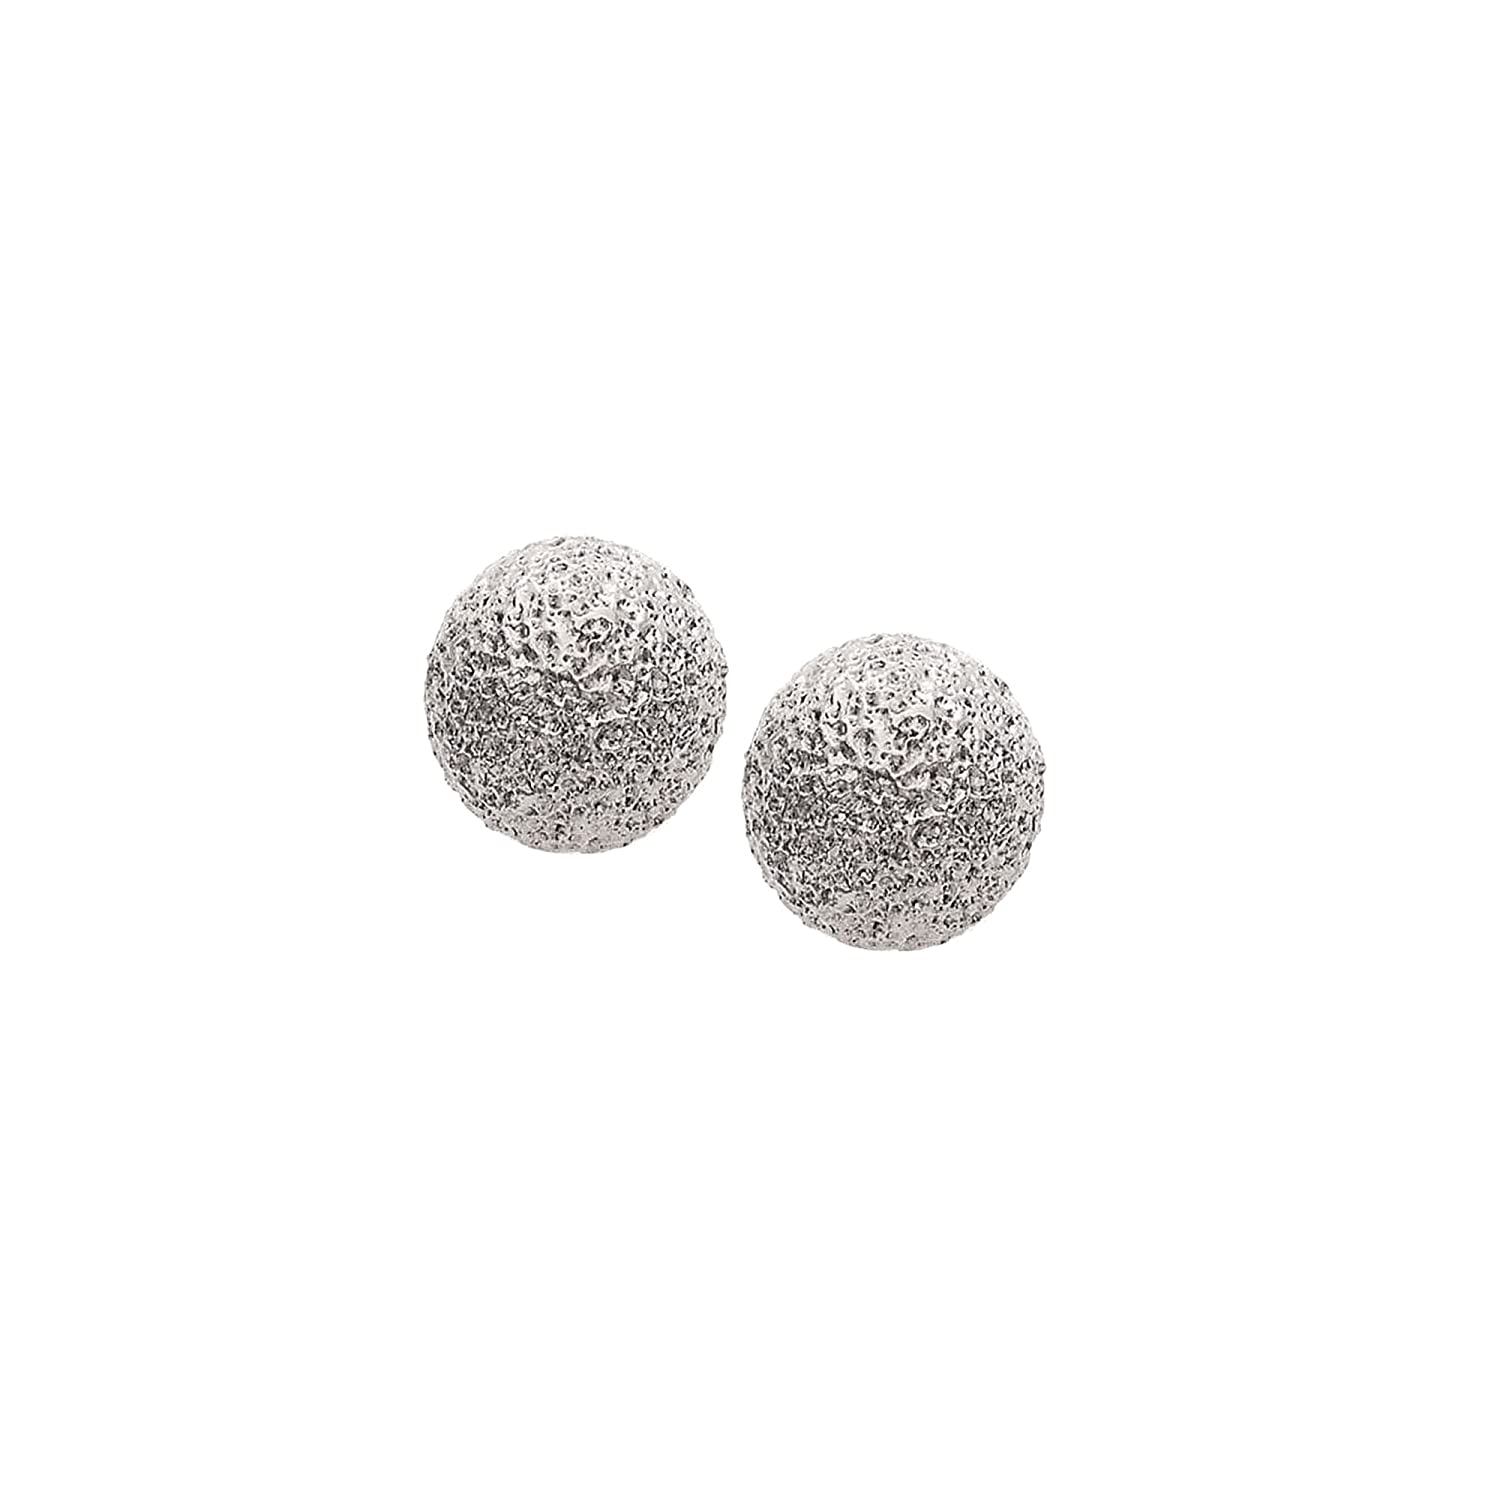 Rhodium Plated Textured Ball Earrings 10mm